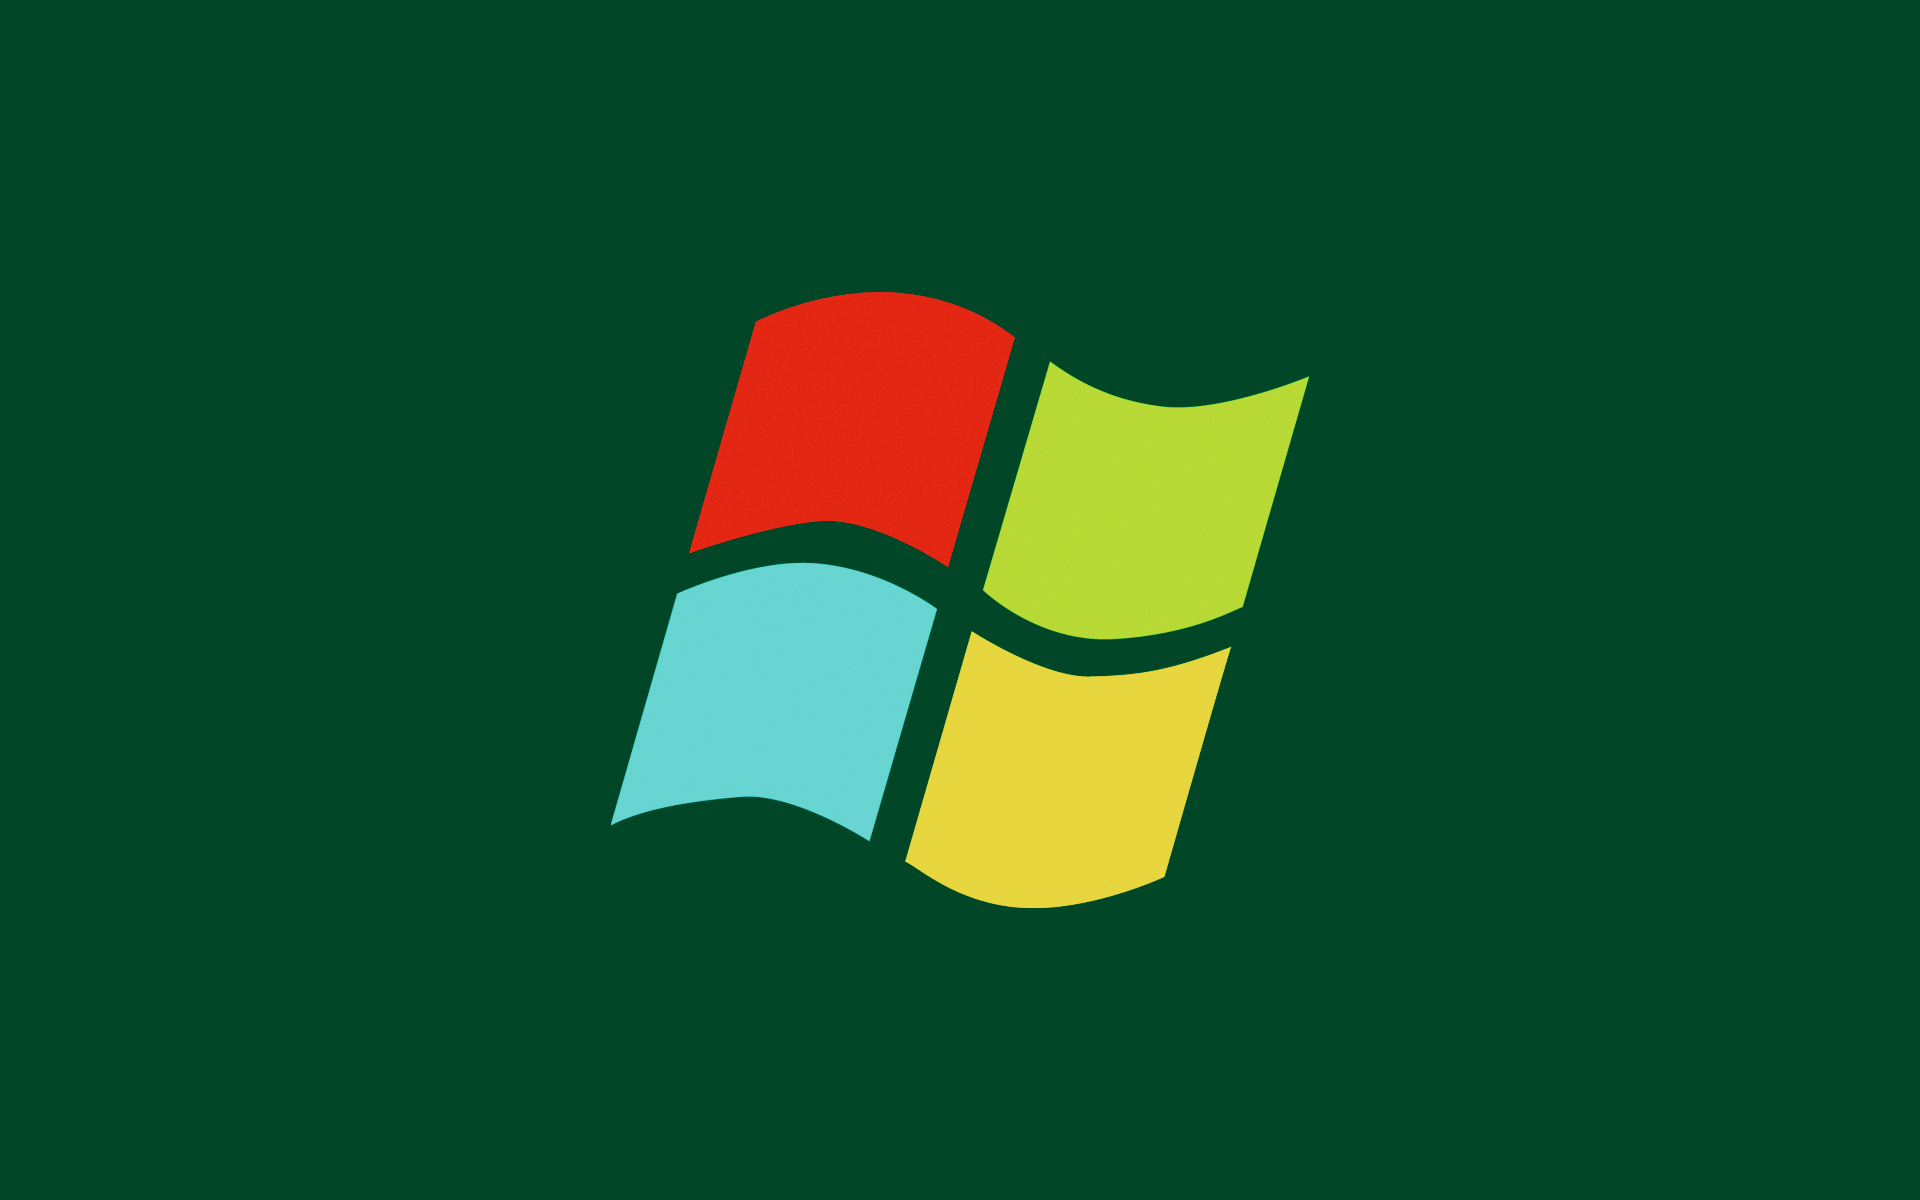 1920x1200 windows 8 logo desktop pc and mac wallpaper